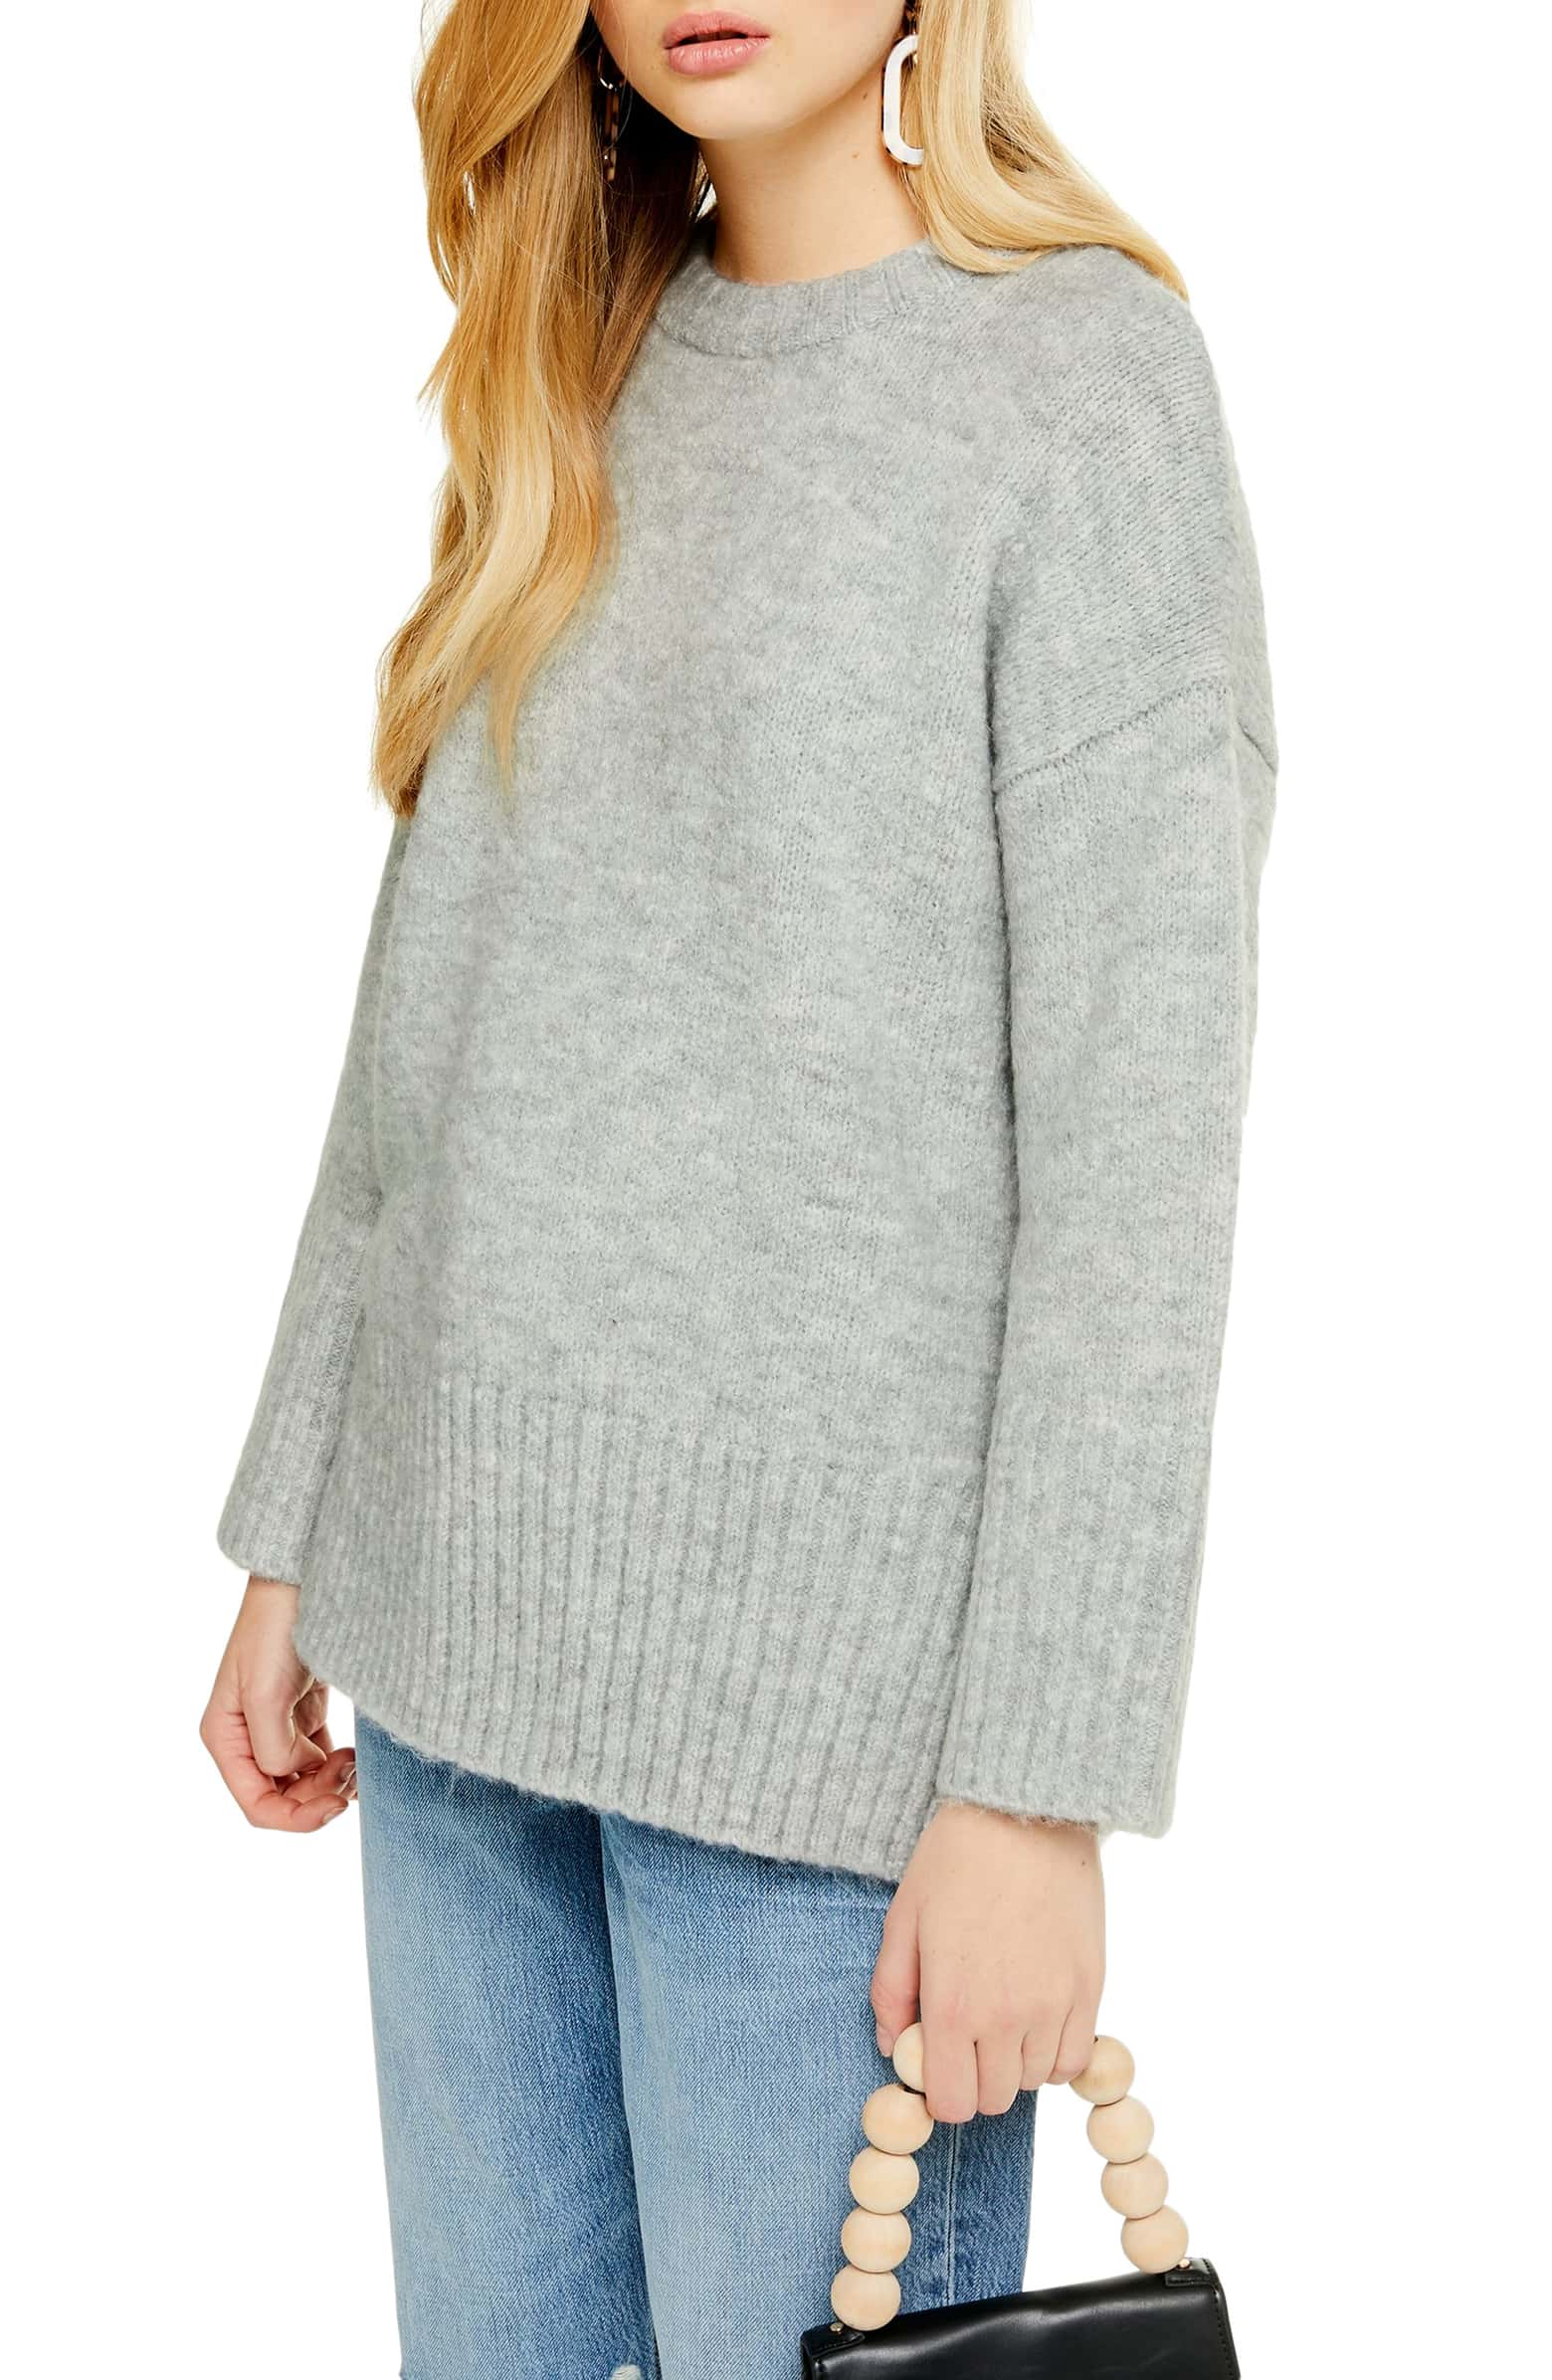 Crewneck Sweater - SALE: $44.90, after sale: $68